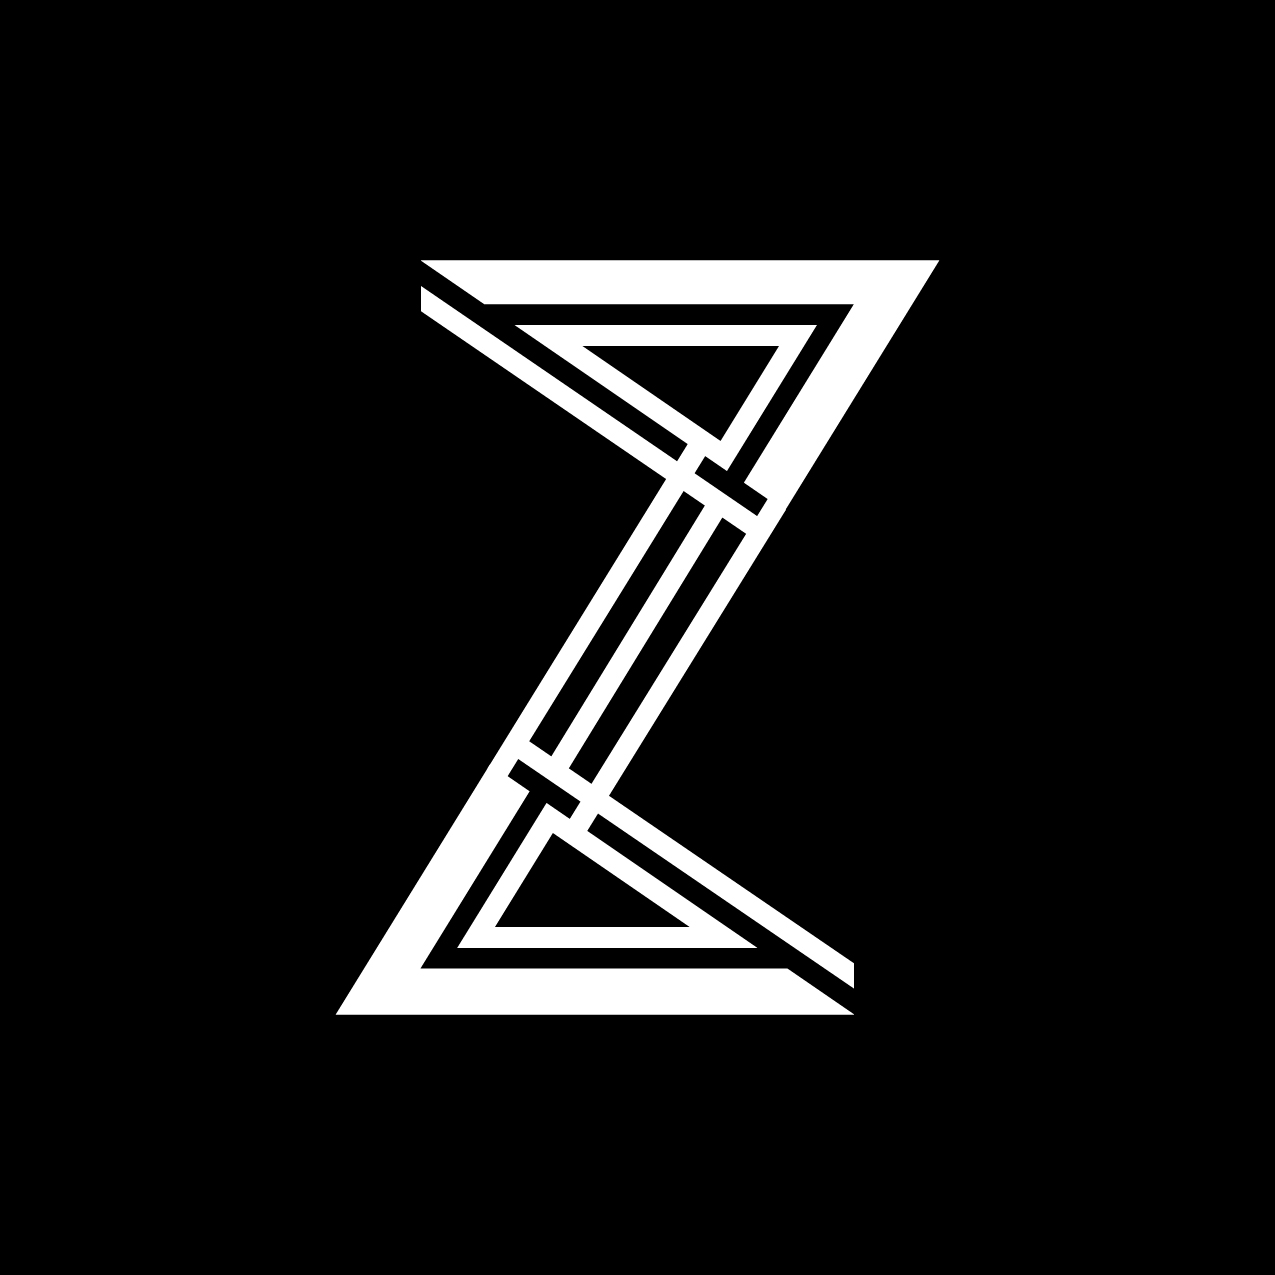 Letter Z4 Design by Furia